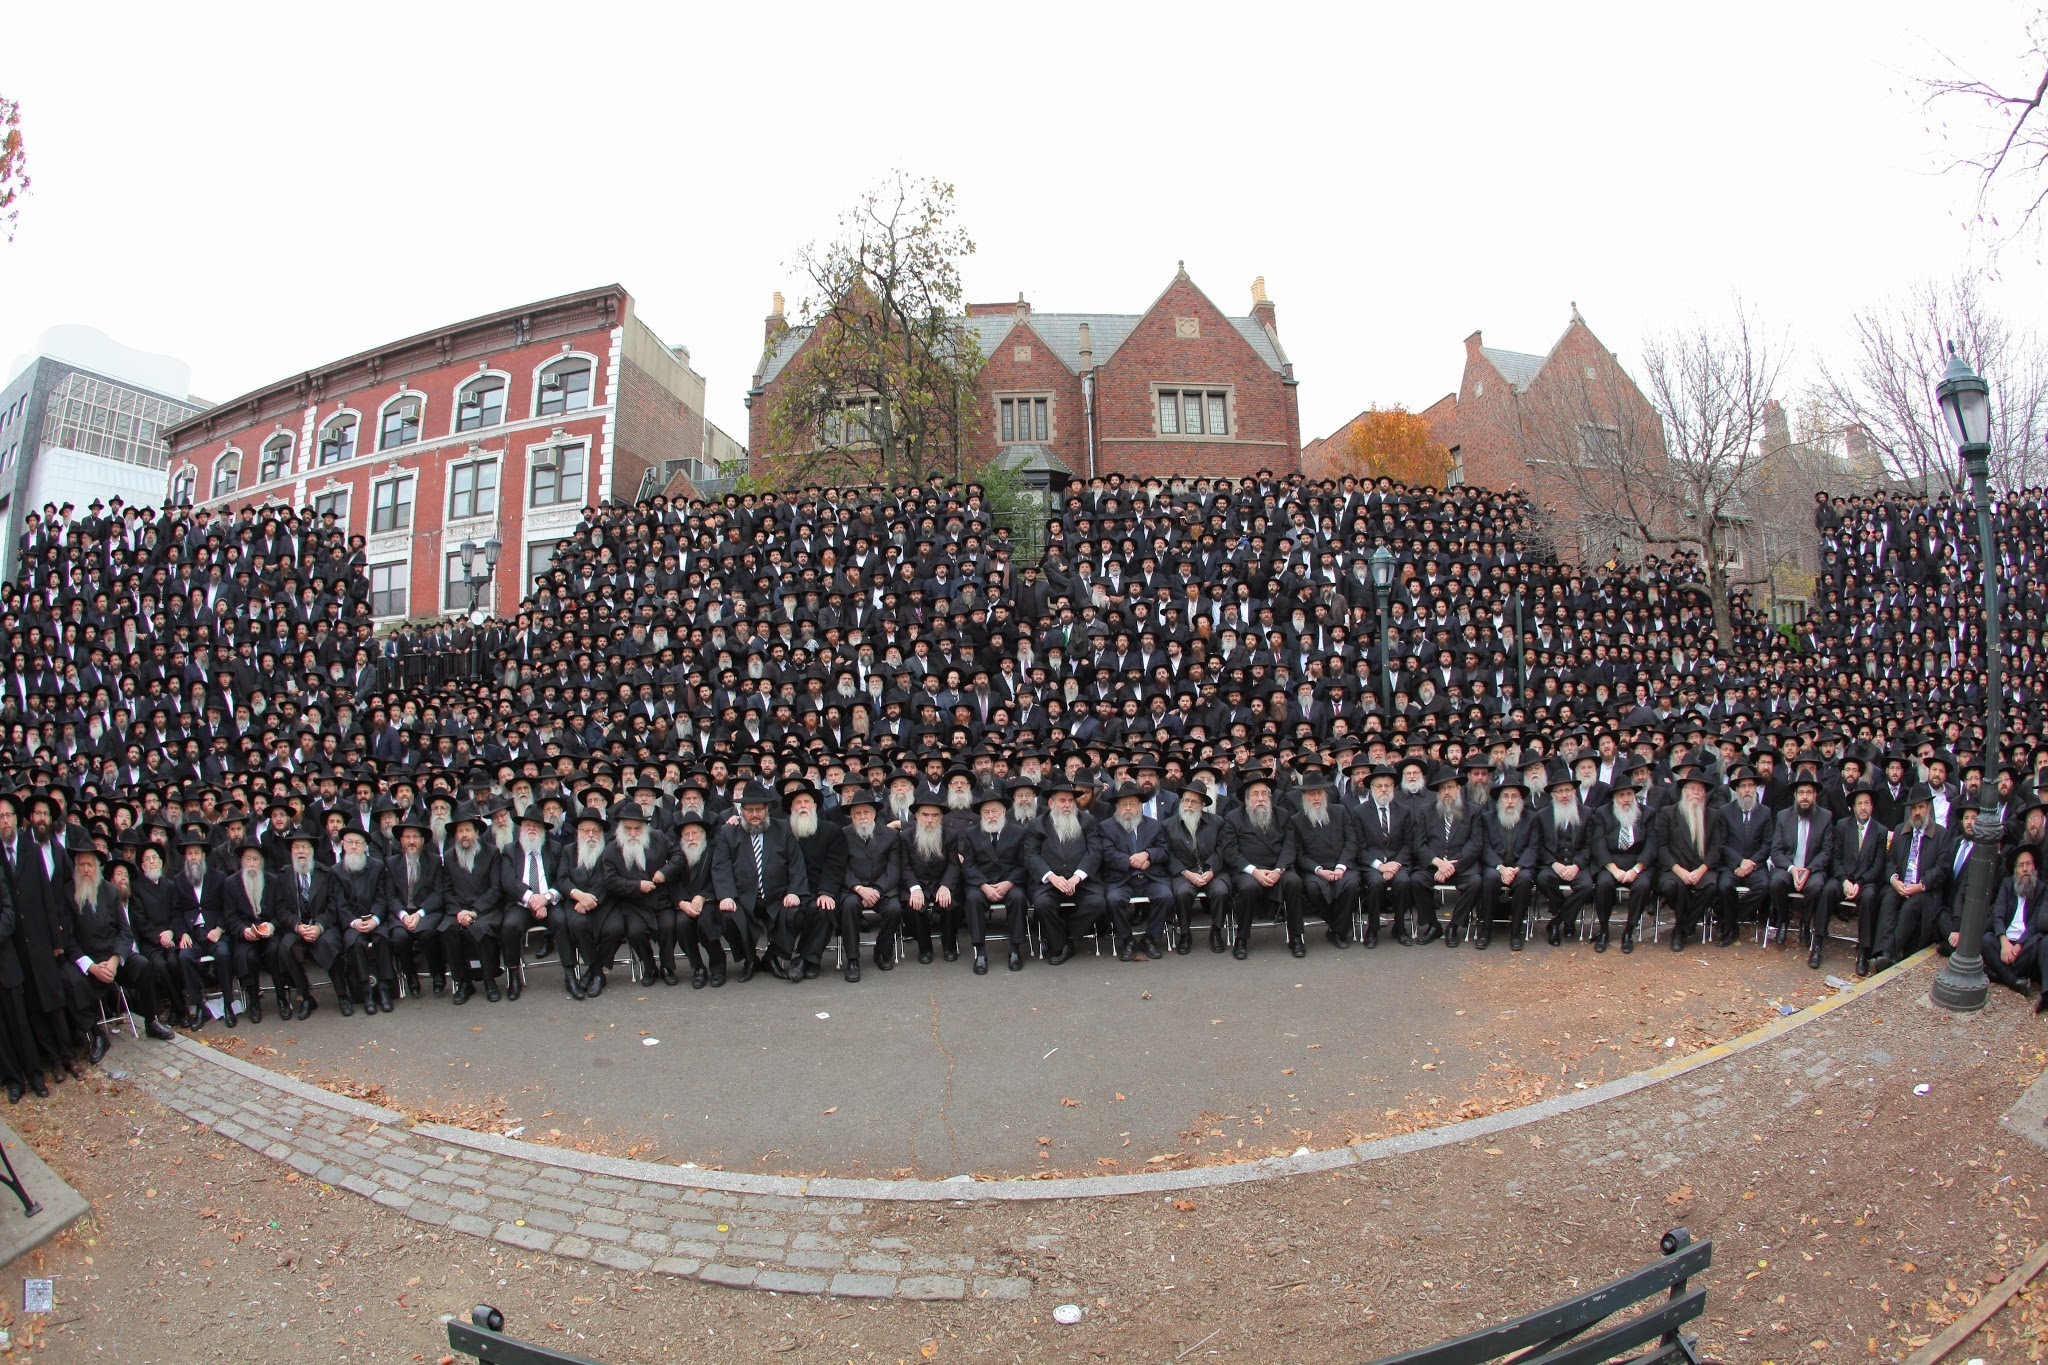 Photo: Thousands of rabbis pose for a group photo in front of Chabad-Lubavitch world headquarters in the Brooklyn borough of New York, Sunday, Nov. 3, 2013. They are among nearly 4,000 rabbis from around the world who are in New York for the International Conference of Chabad-Lubavitch Emissaries, an annual event aimed at reviving Jewish awareness and practice around the world.  Credit: Meir Alfasi / Chabad.org